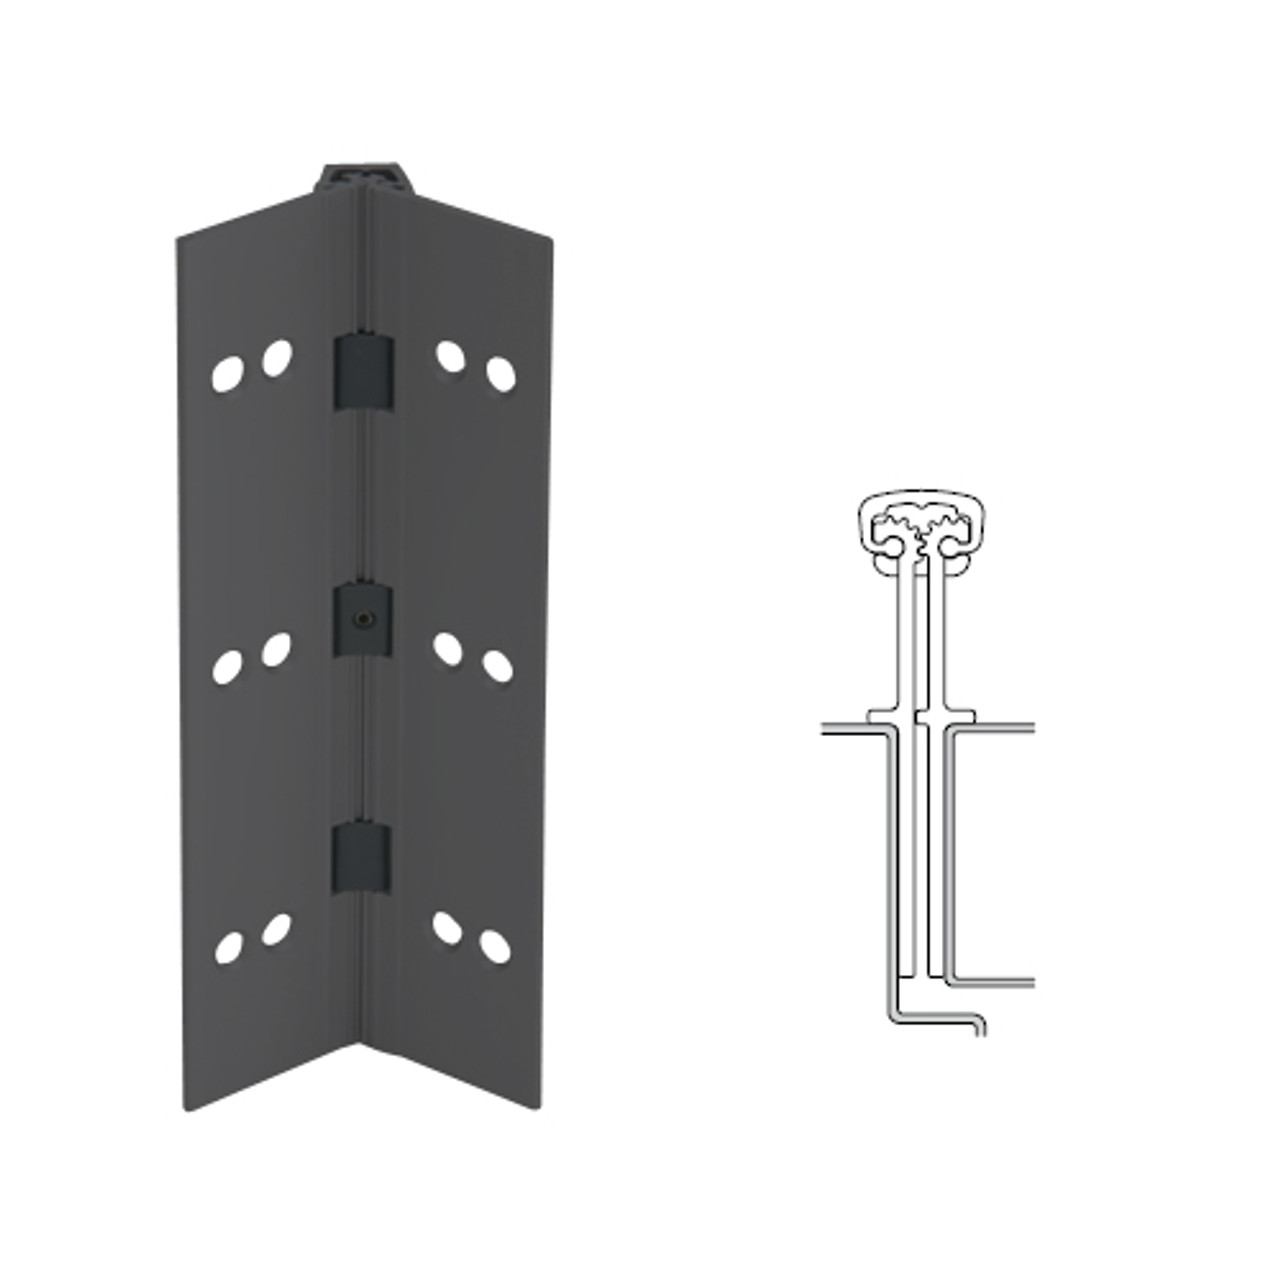 040XY-315AN-120-WD IVES Full Mortise Continuous Geared Hinges with Wood Screws in Anodized Black